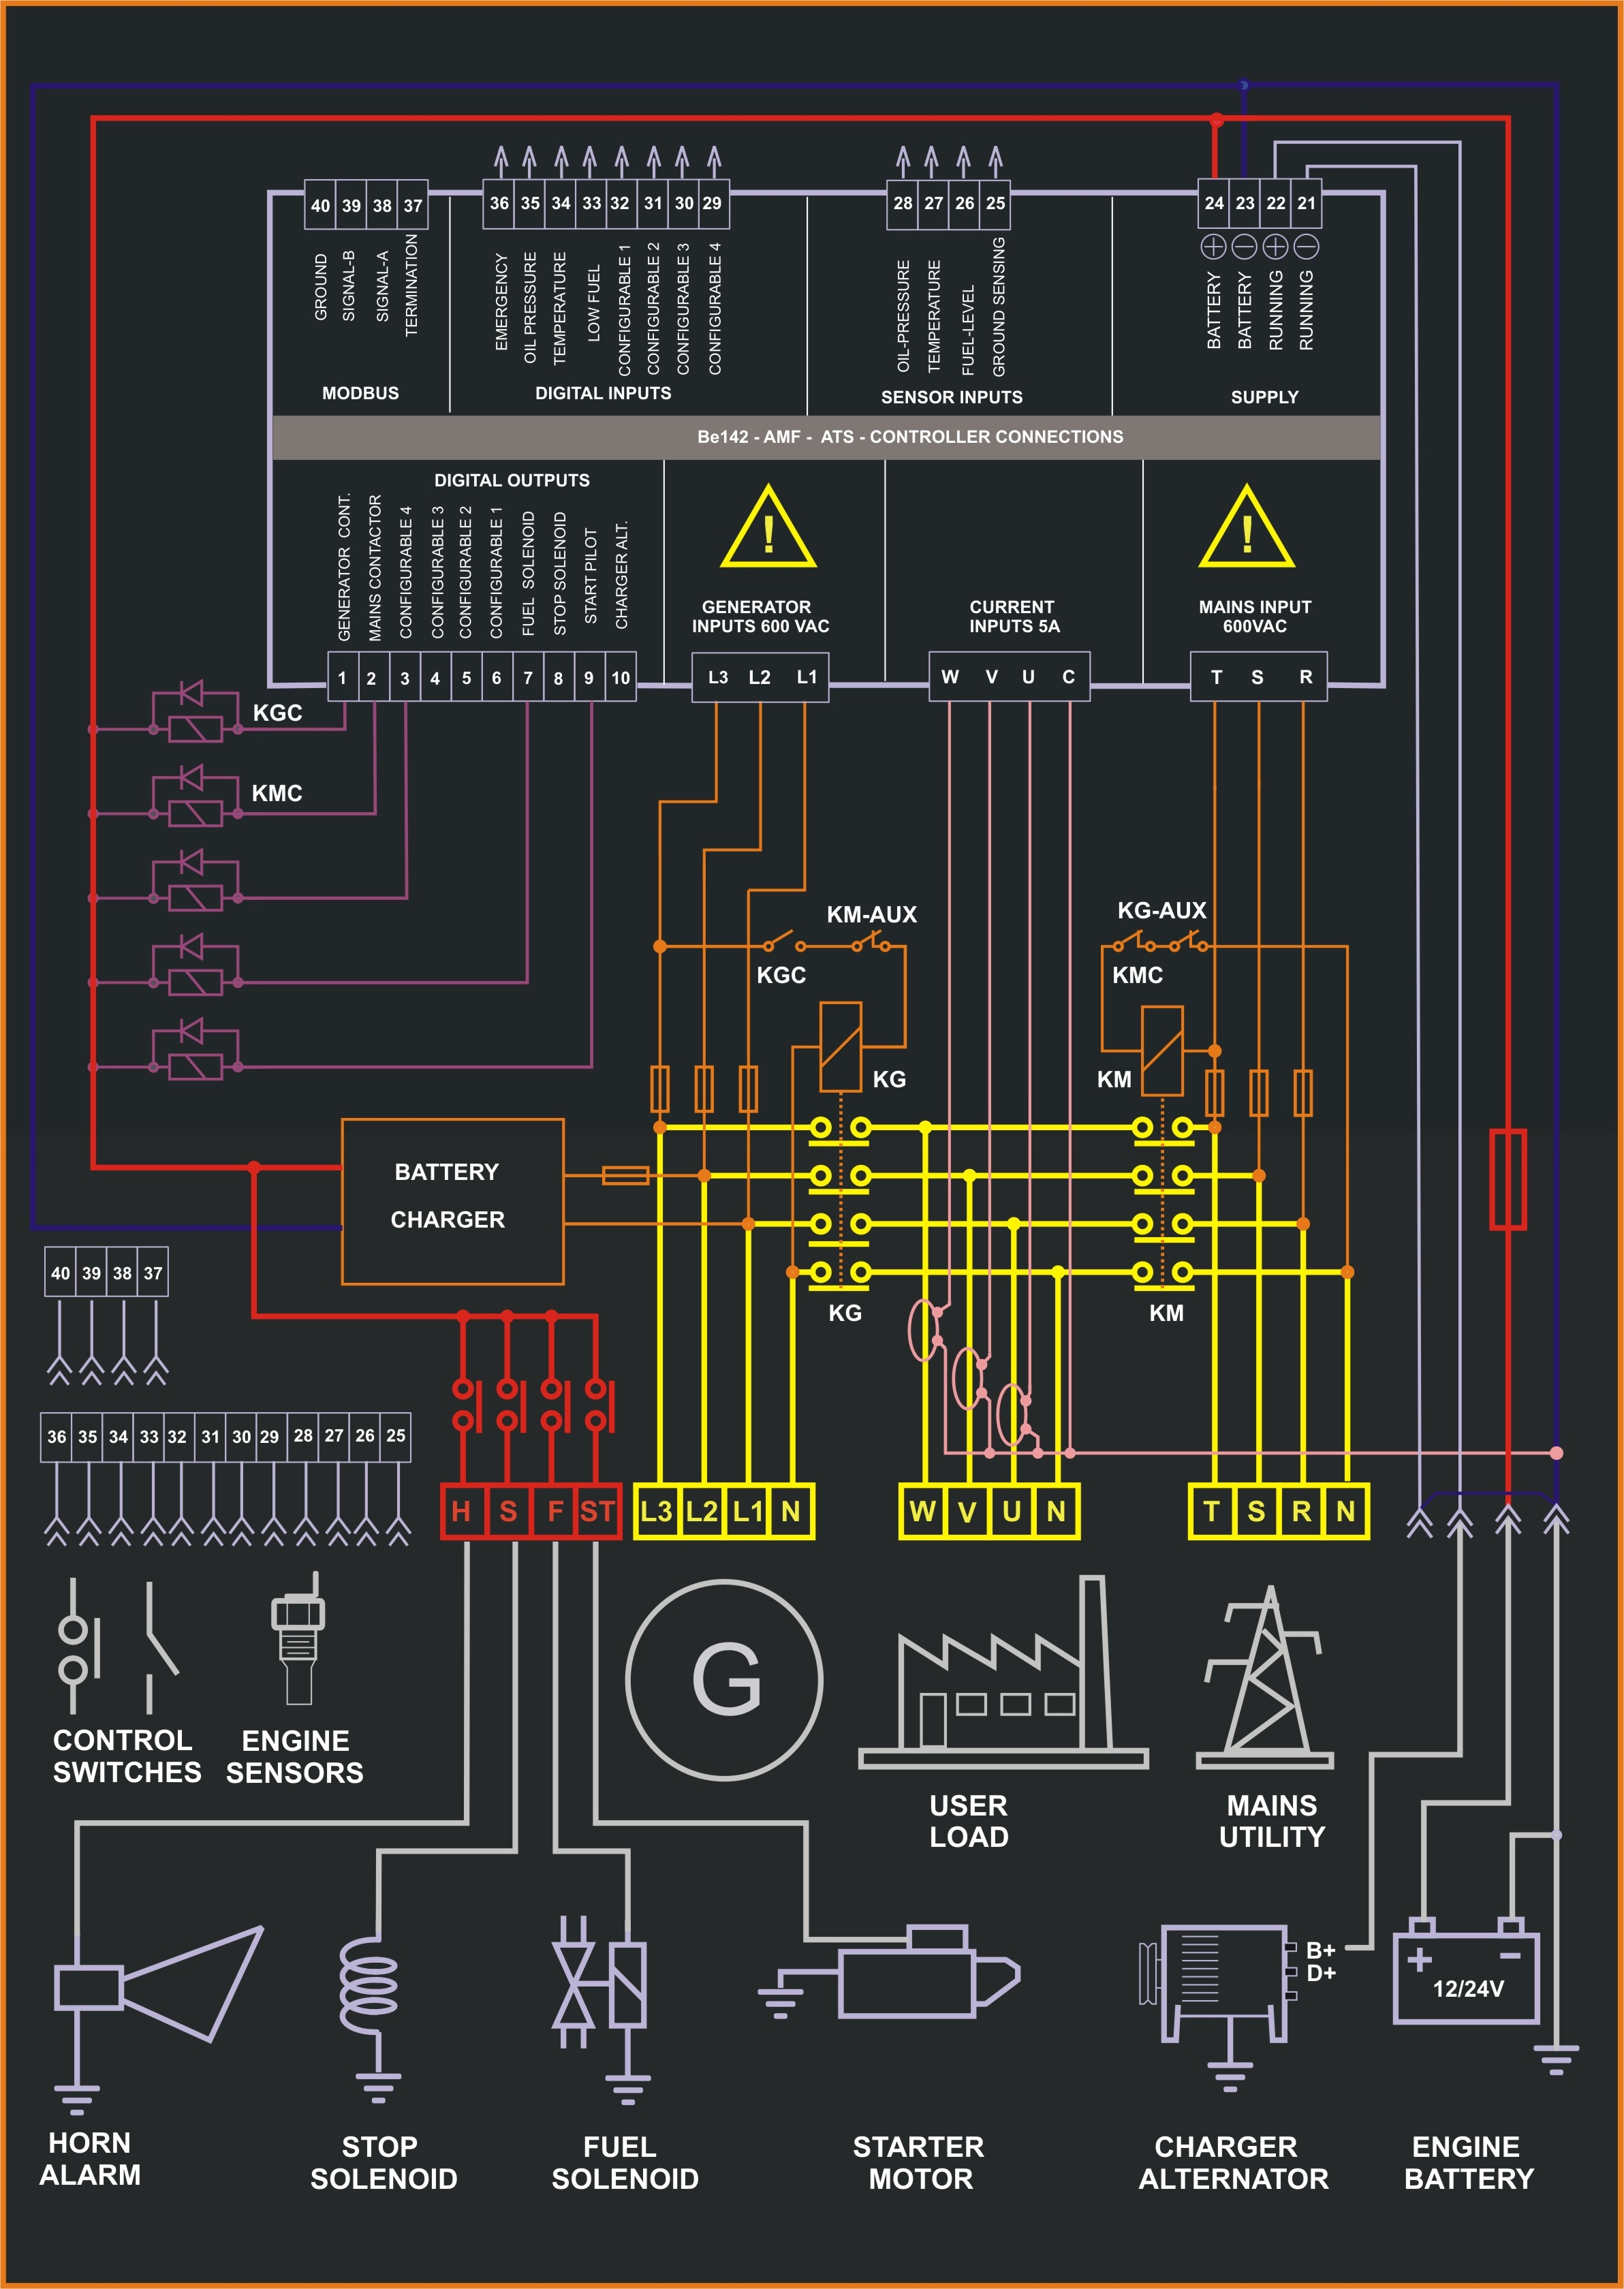 Industrial Control Panel Wiring Diagram 39 Images Electronic Amf Circuit Be142 Automatic Mains Failure Genset Controller Full Size